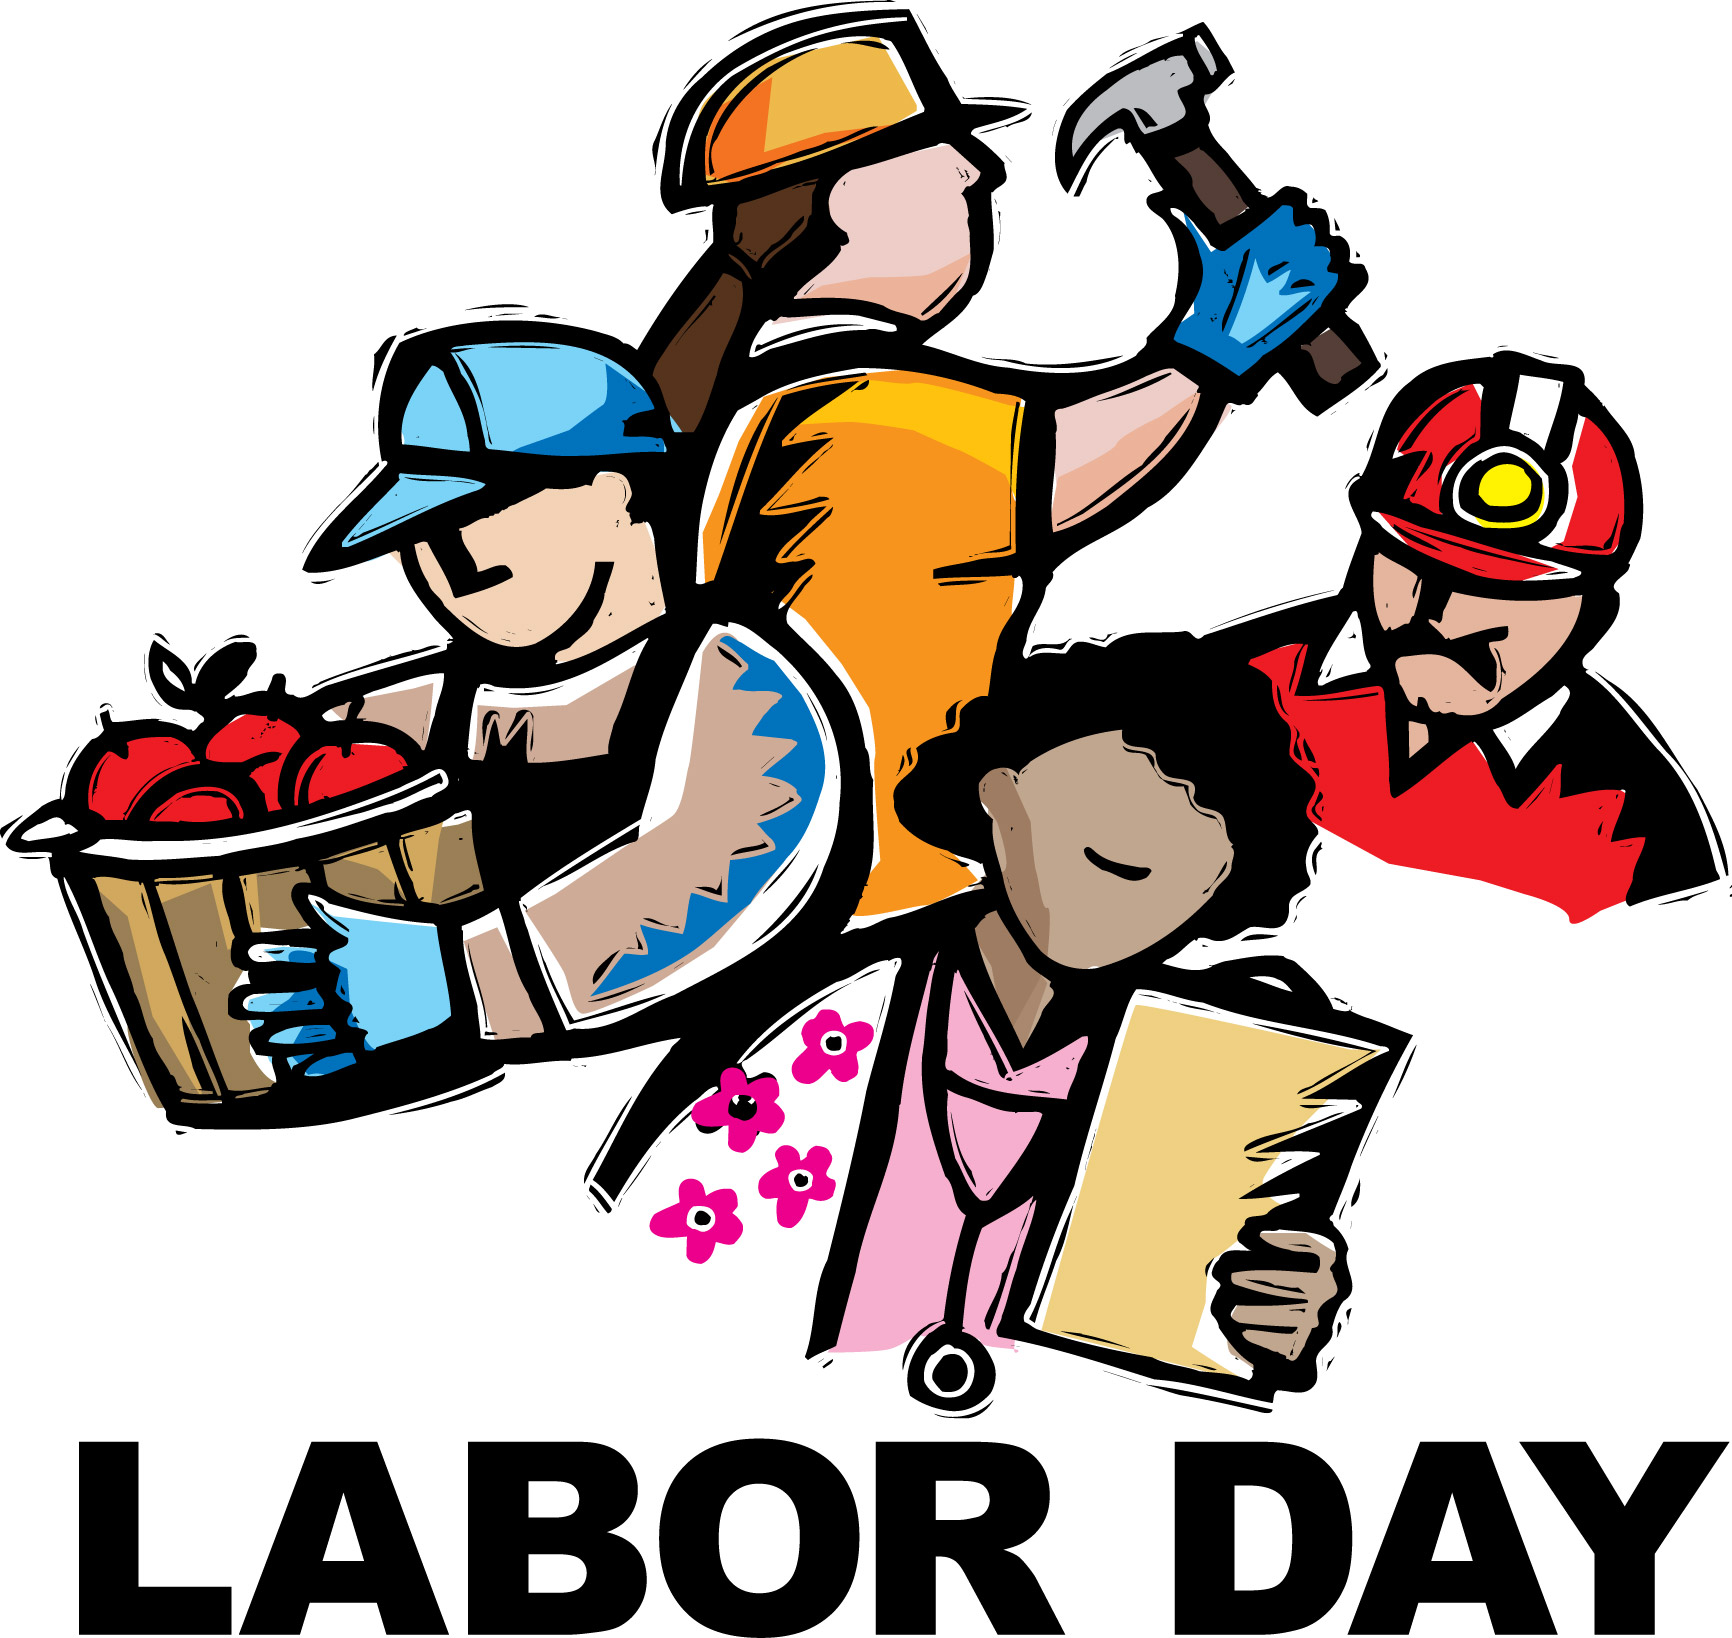 Labor day 2017 clipart vector transparent library Labor Day Clipart Group with 36+ items vector transparent library